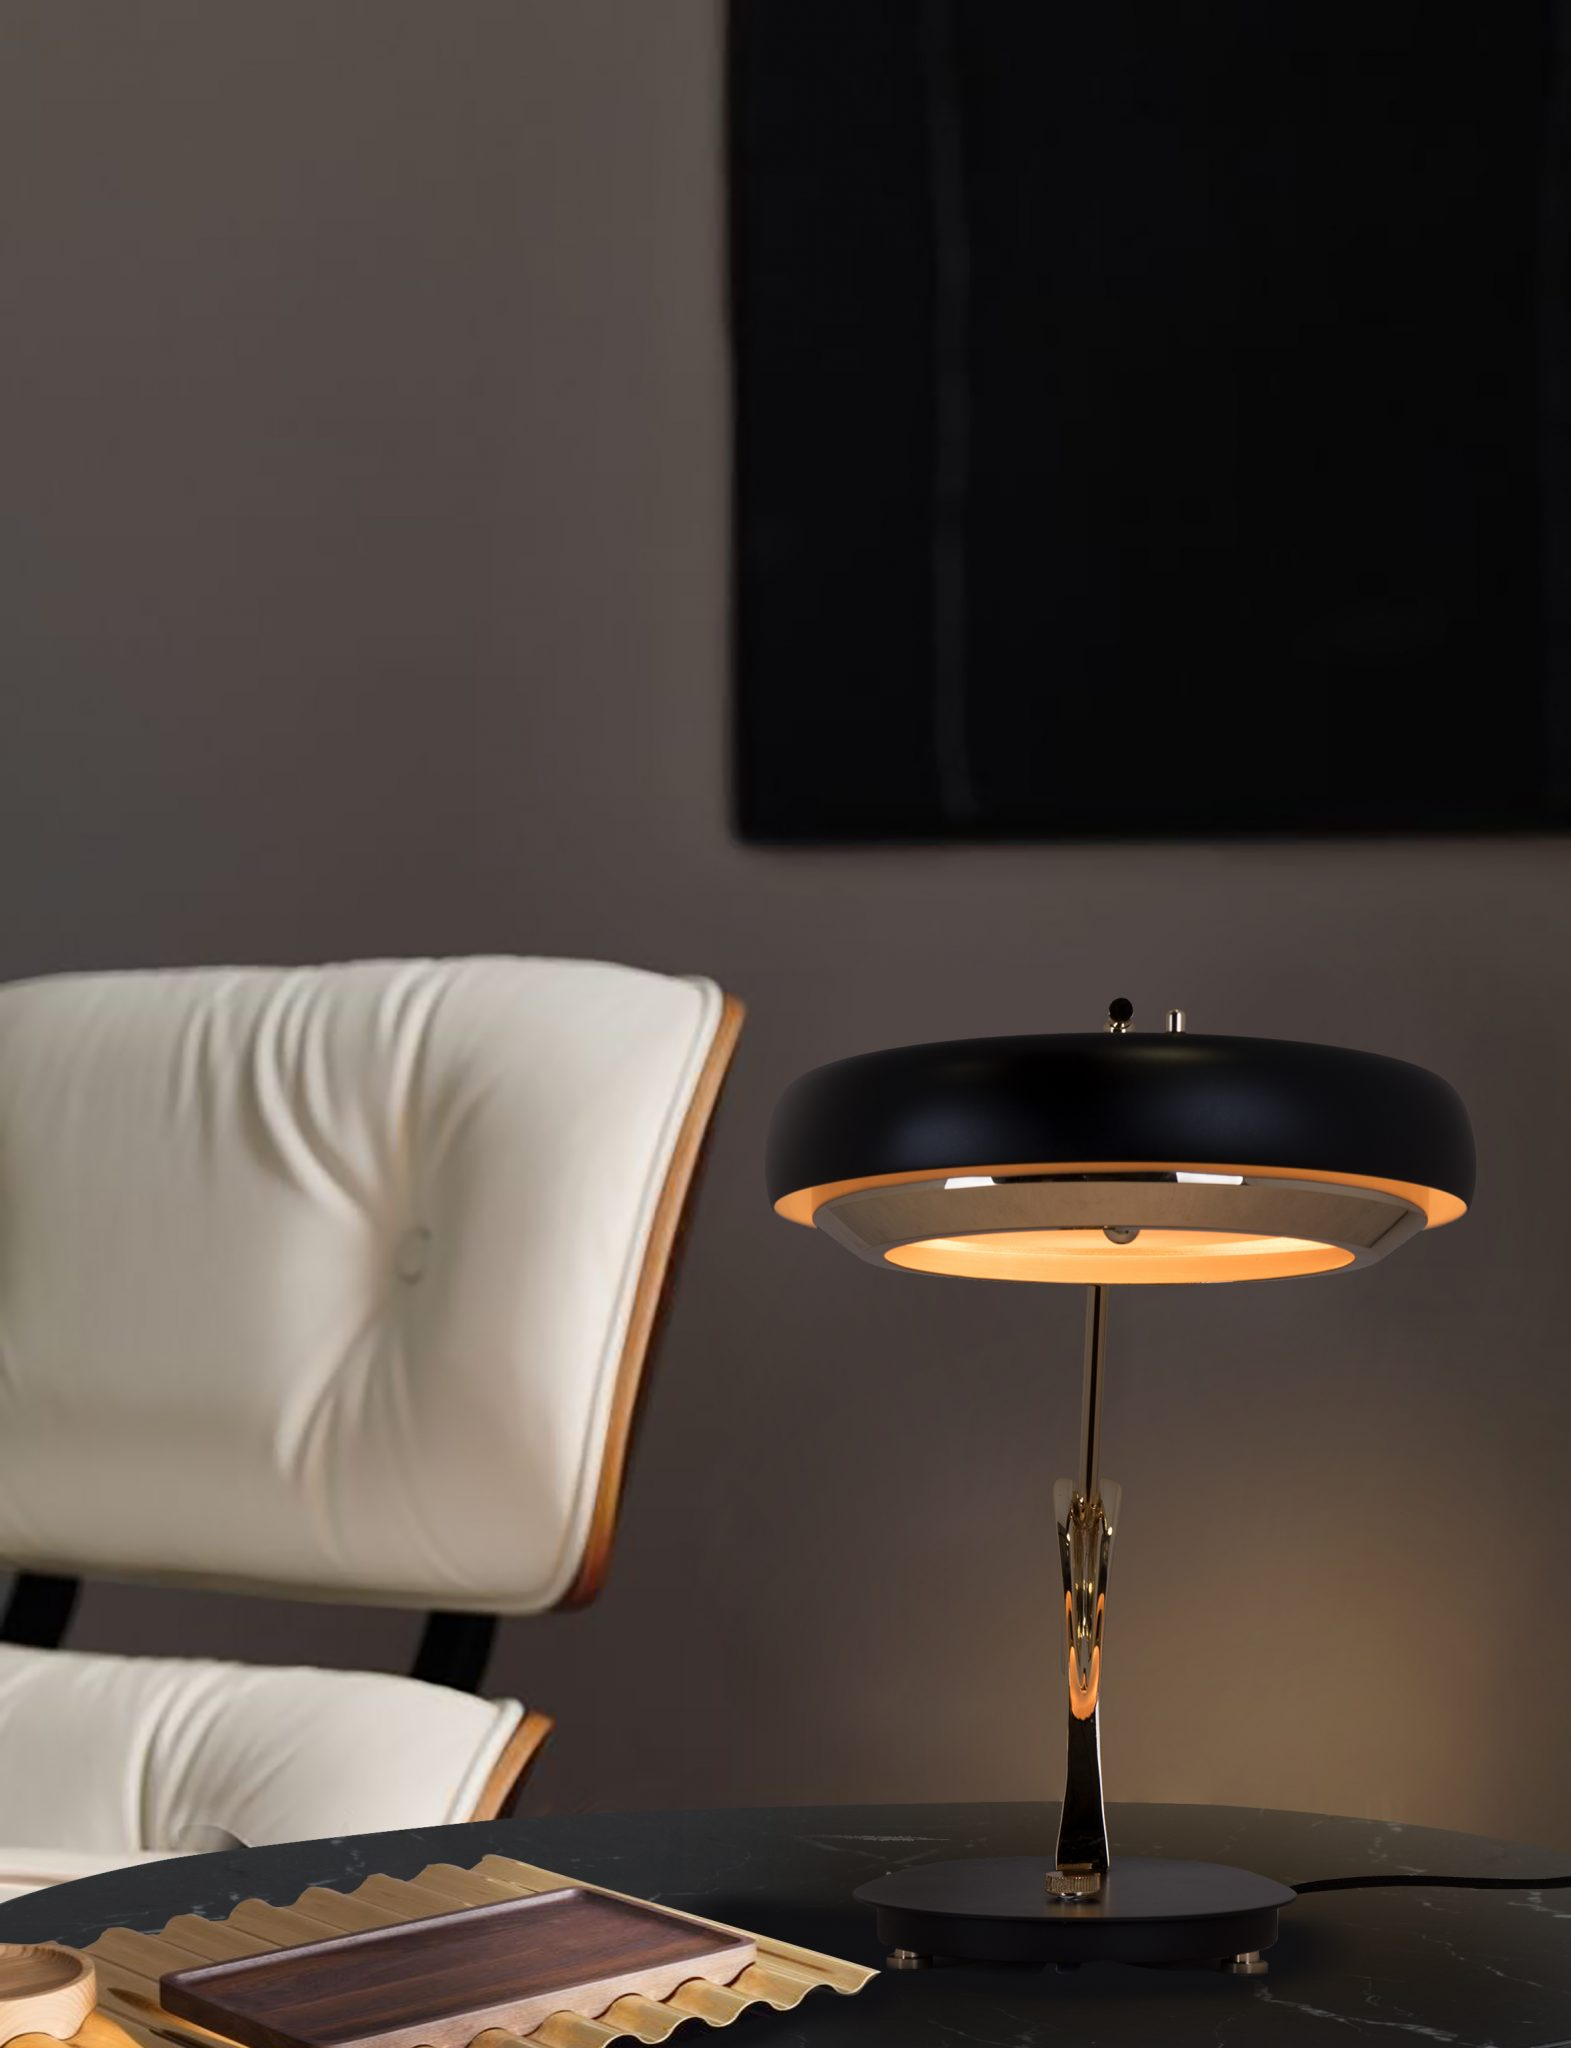 BRIGHTEN UP YOUR SPACE WITH THIS DESK LAMP